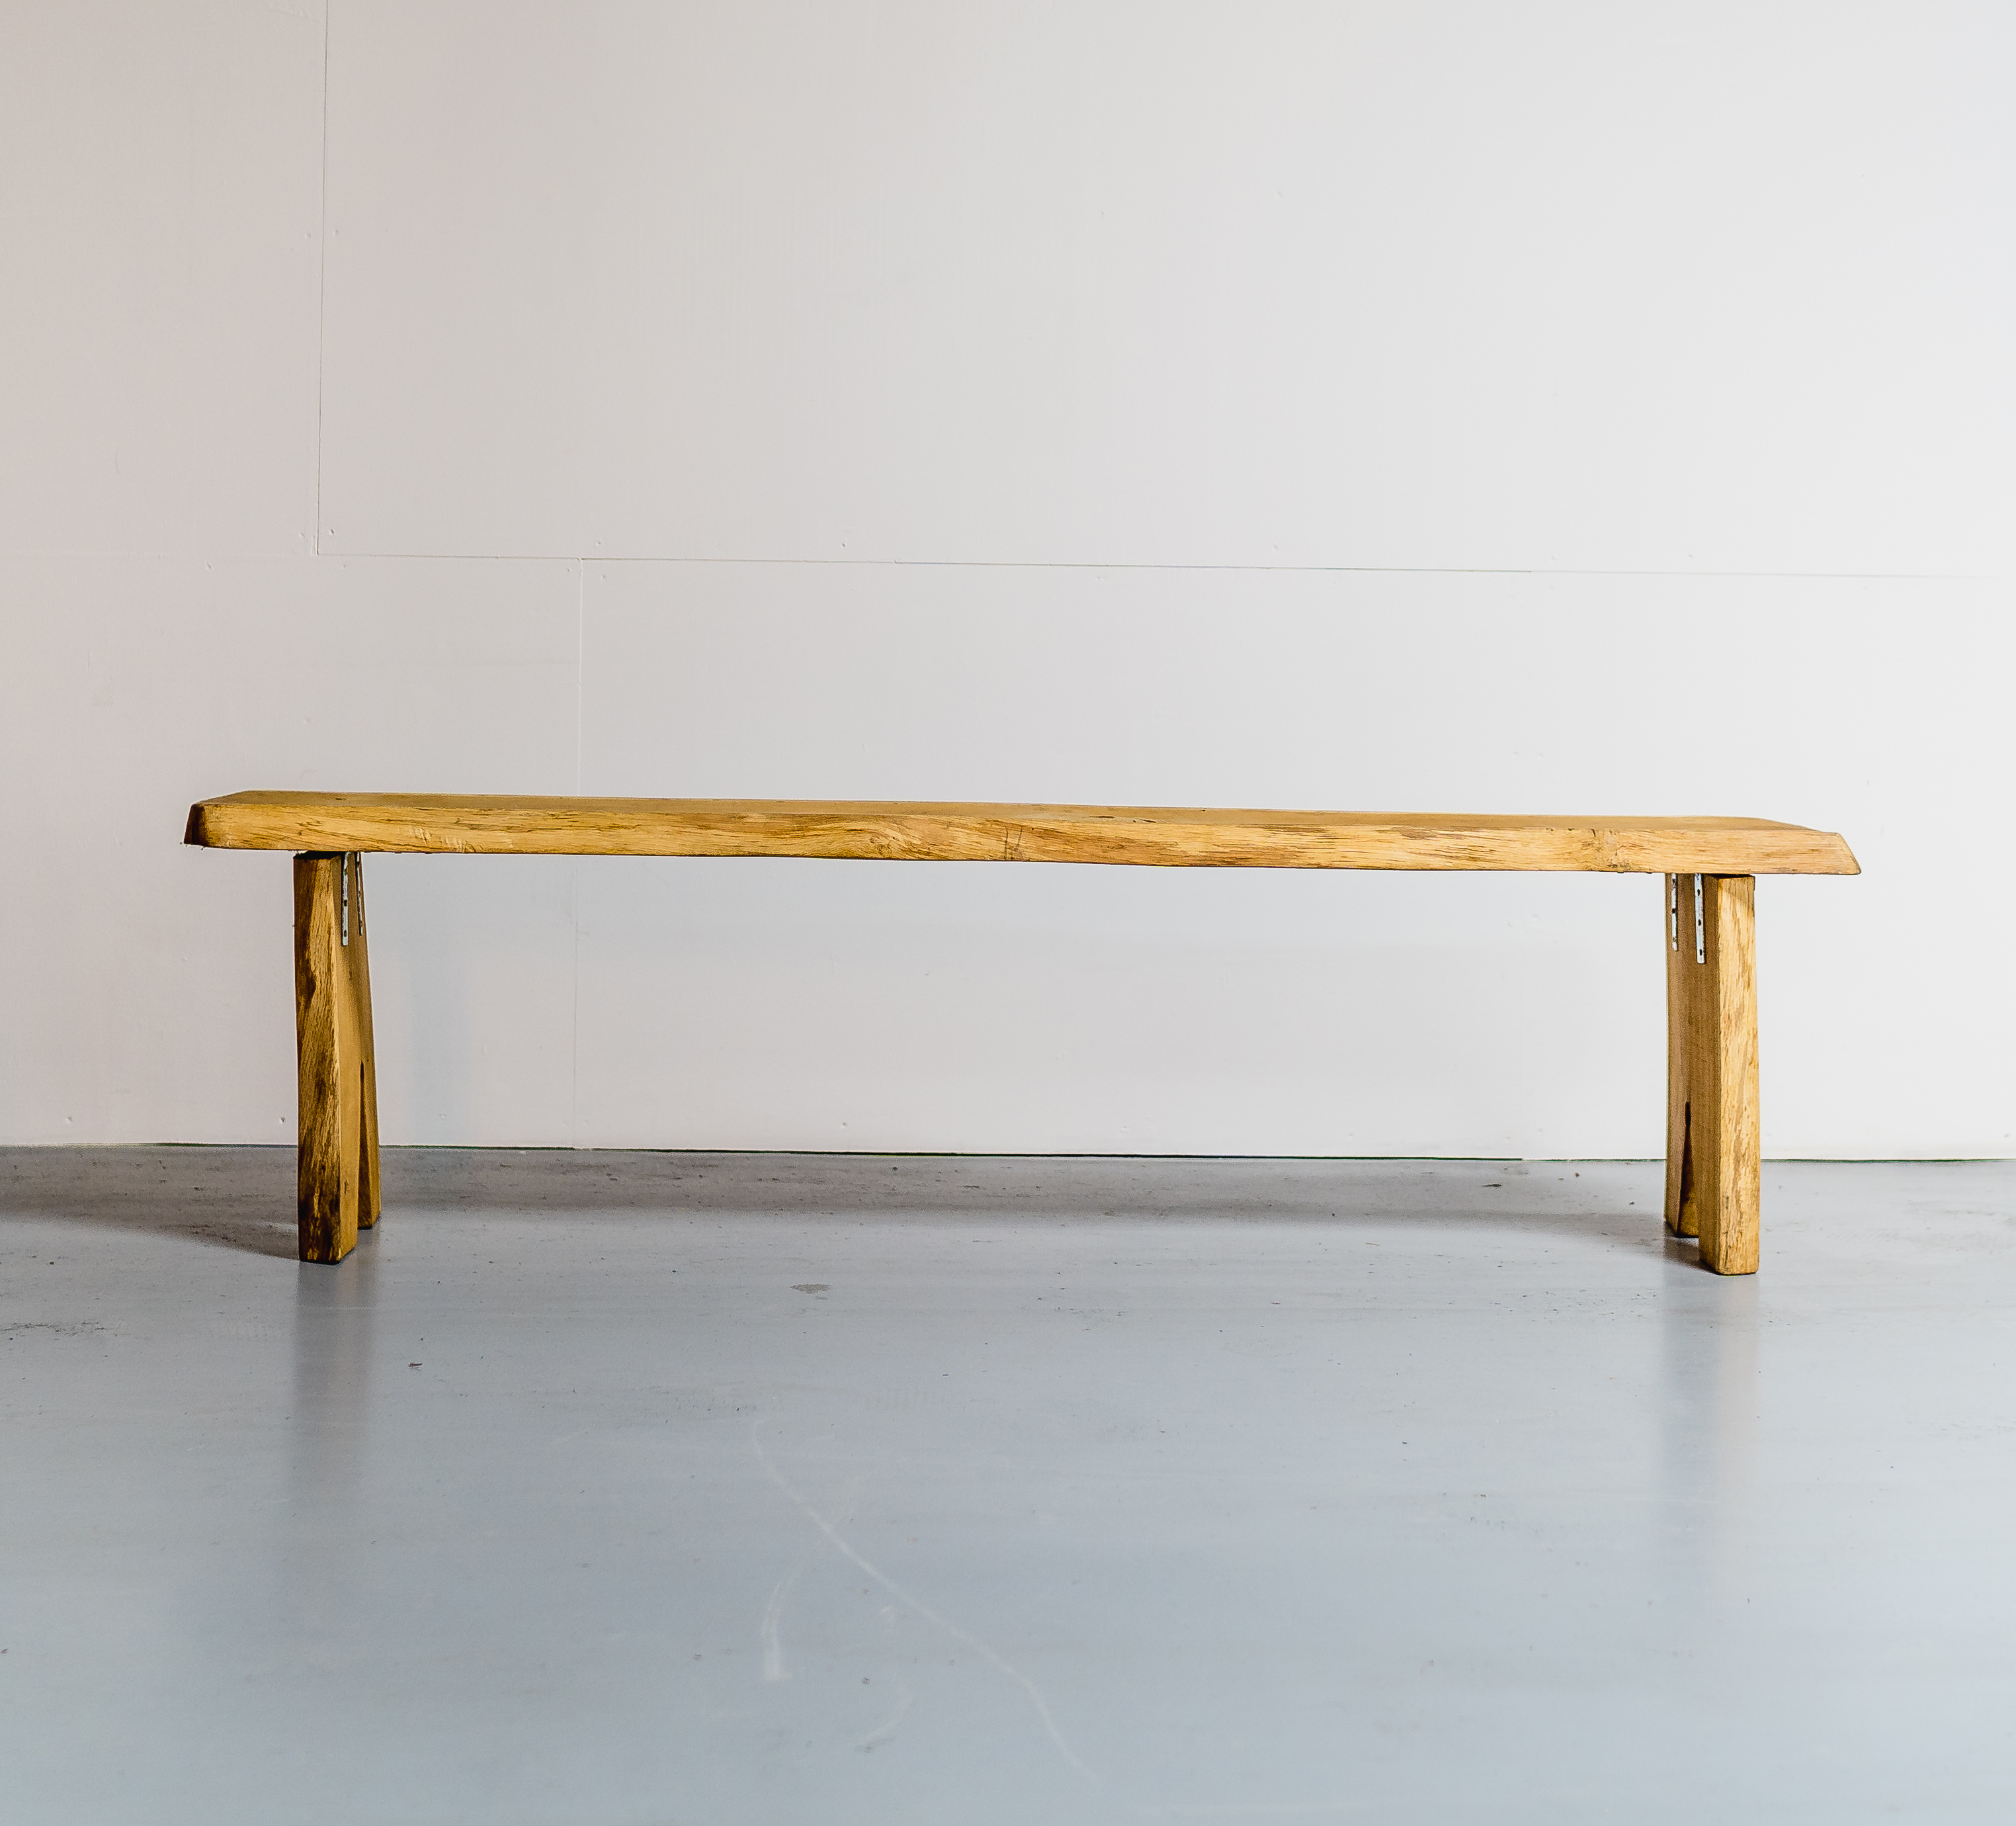 6ft Oak Live Edge Wooden Bench £150